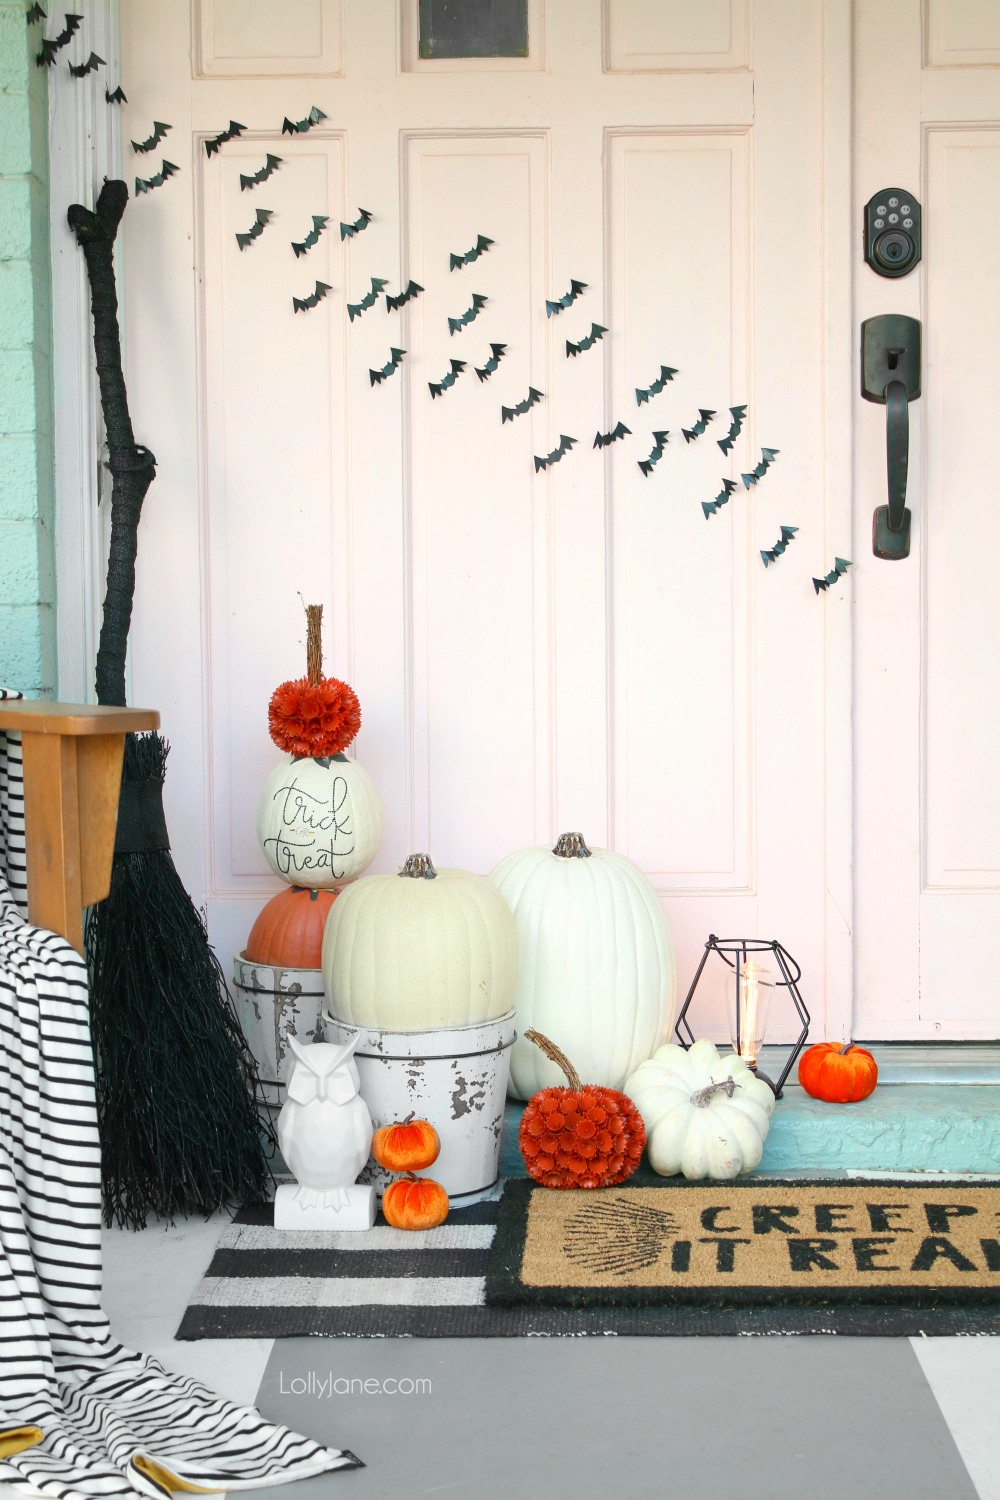 Easy DIY Pumpkin Topiary ever... just pile some pumpkins together and secure to spruce up your Halloween or fall porch. BAM. Decorations = done!